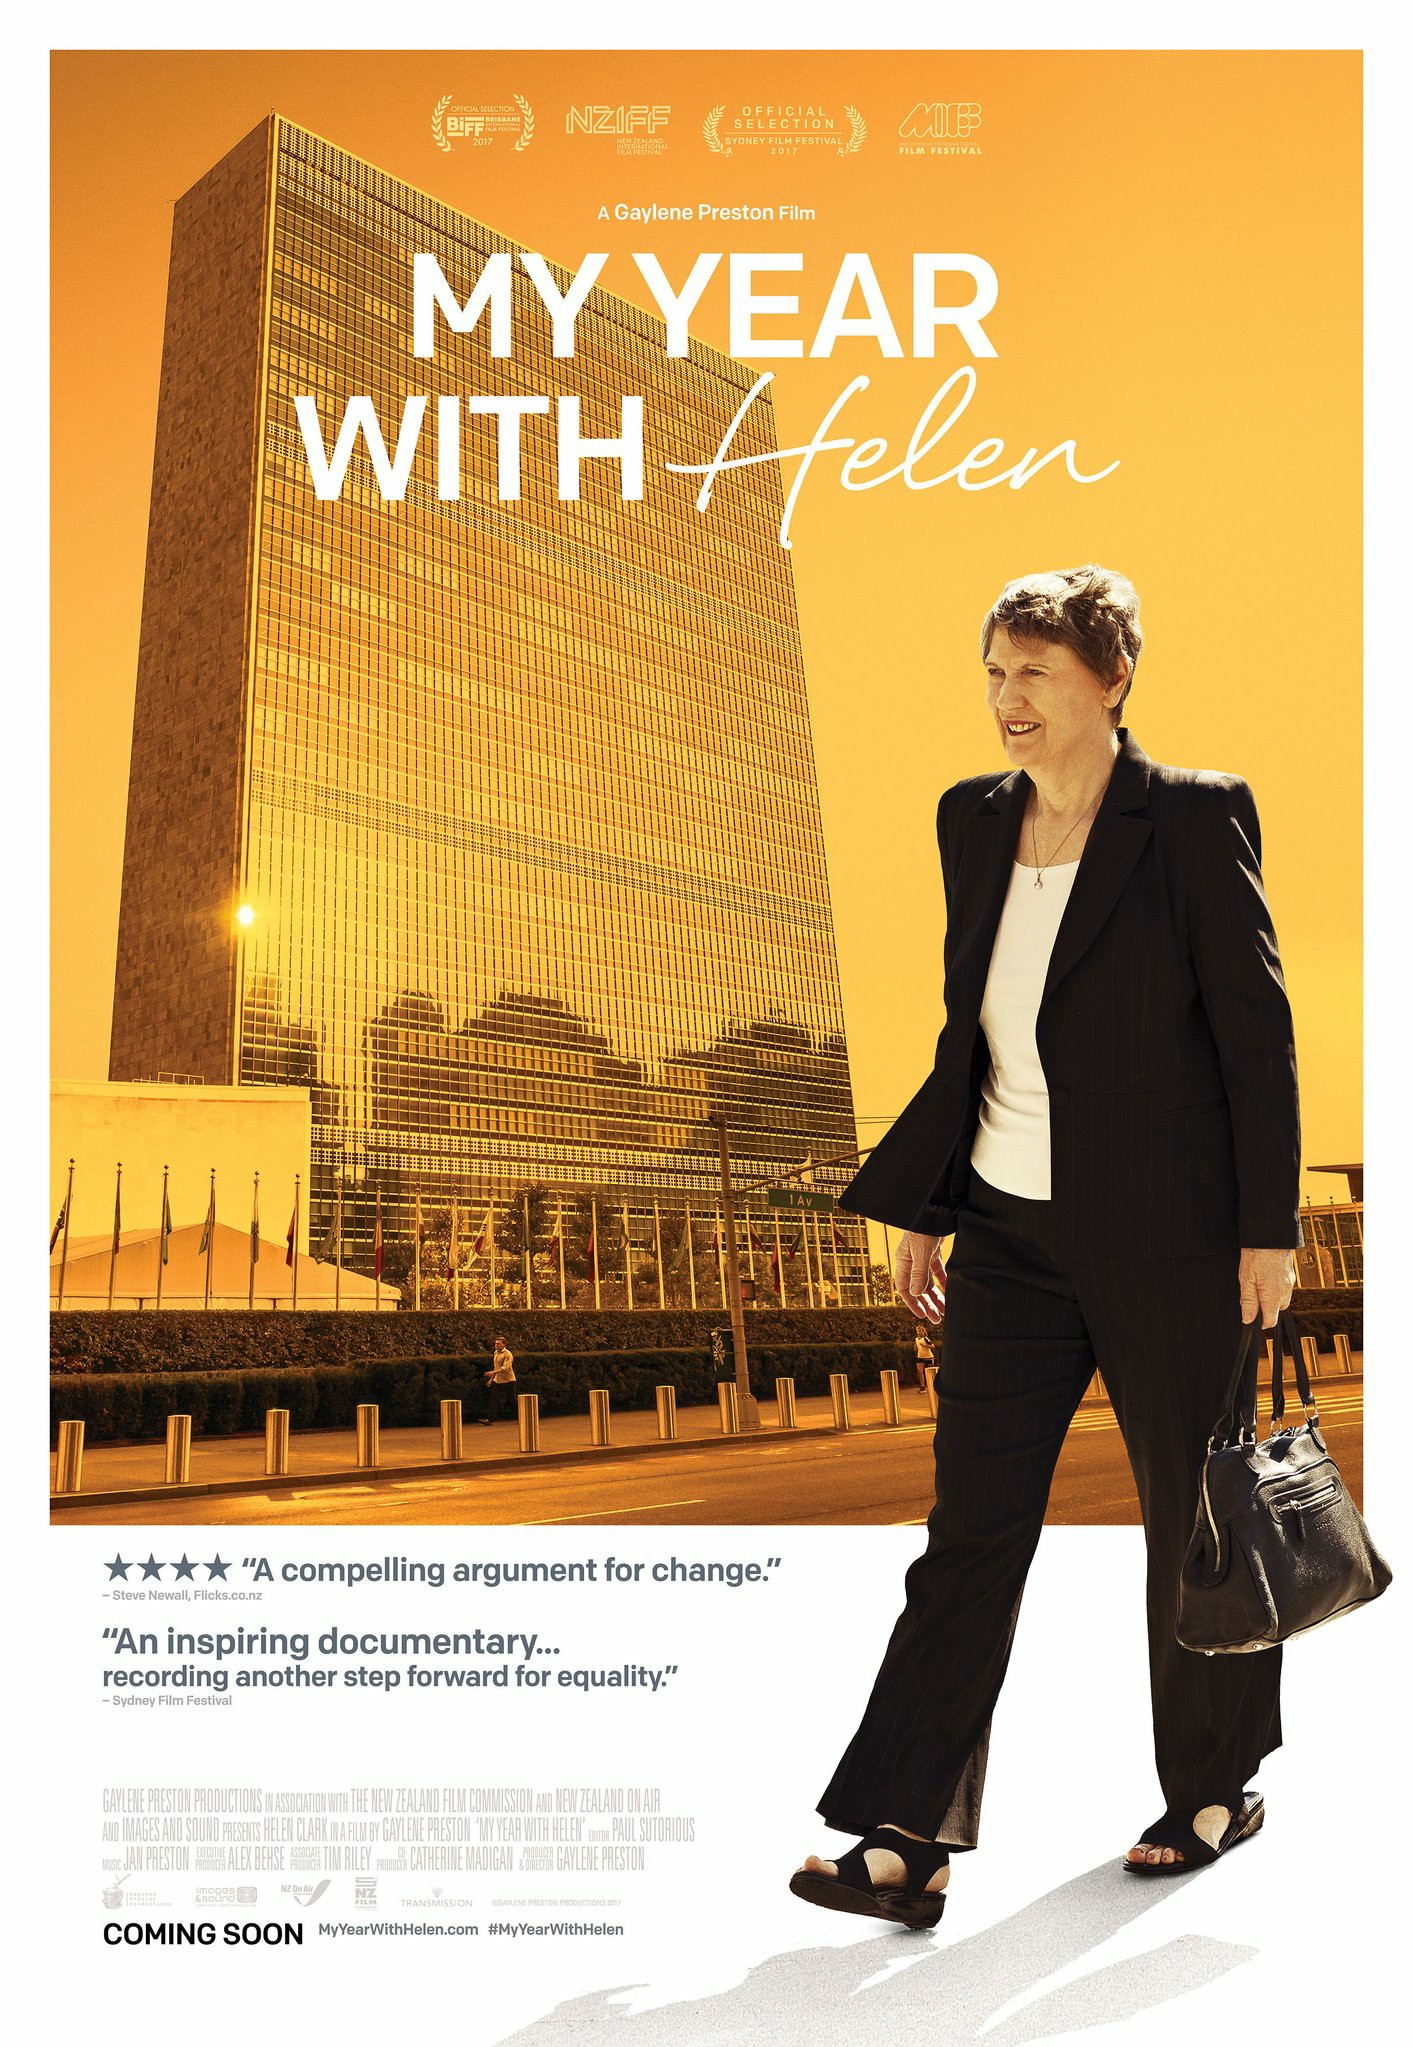 My-YEar-with-helen-Poster.jpg